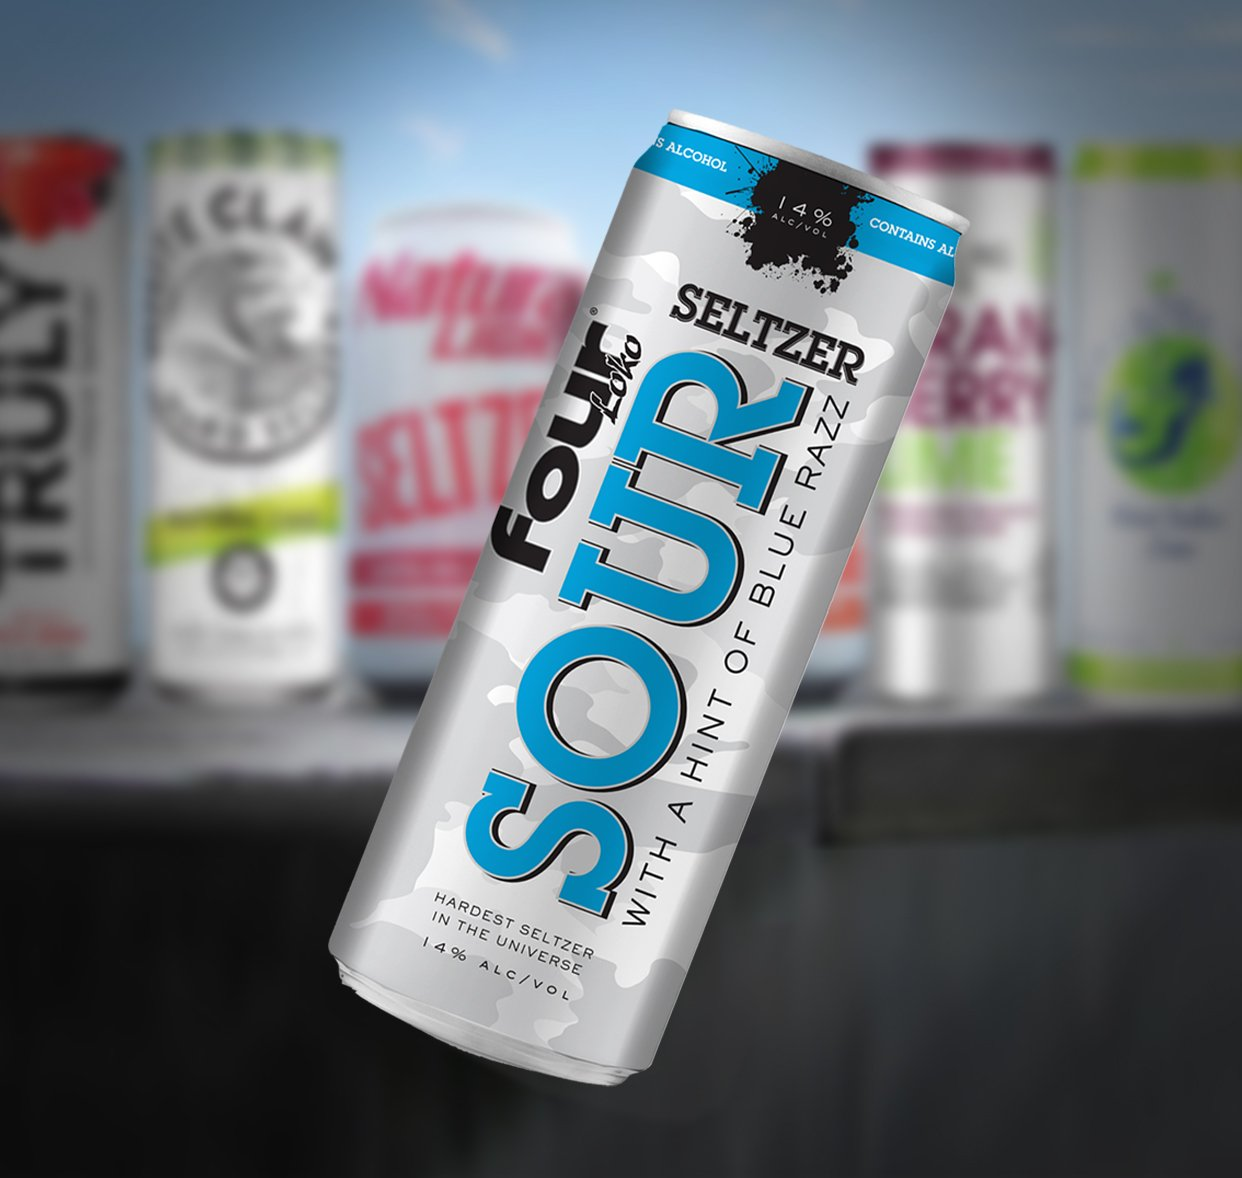 A blue and silver can reading 'Four Loko Seltzer Sour' tilted sideways in front of a blurred background of other cans.